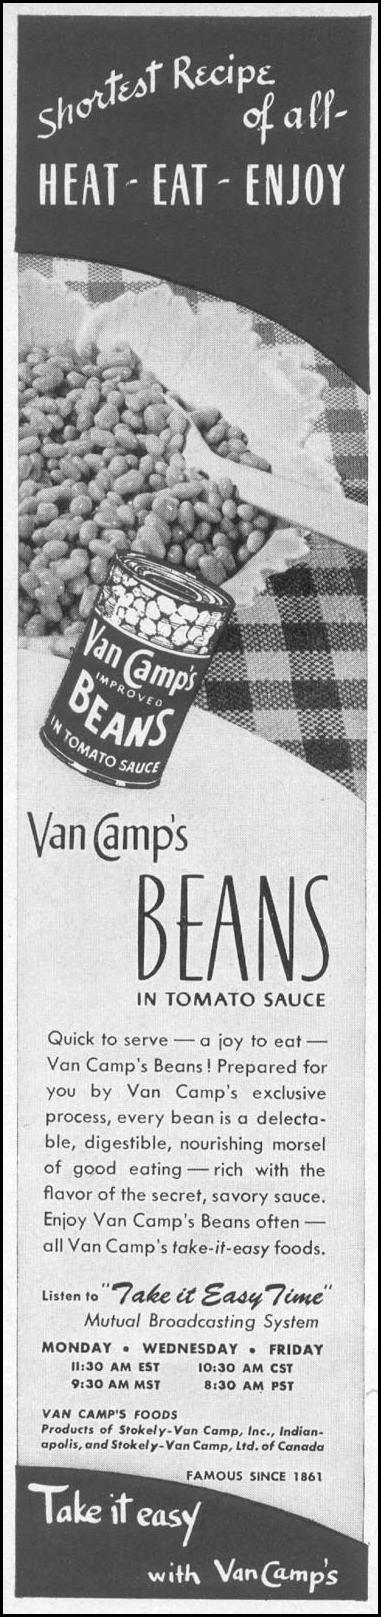 VAN CAMP'S BEANS IN TOMATO SAUCE WOMAN'S DAY 06/01/1946 p. 58